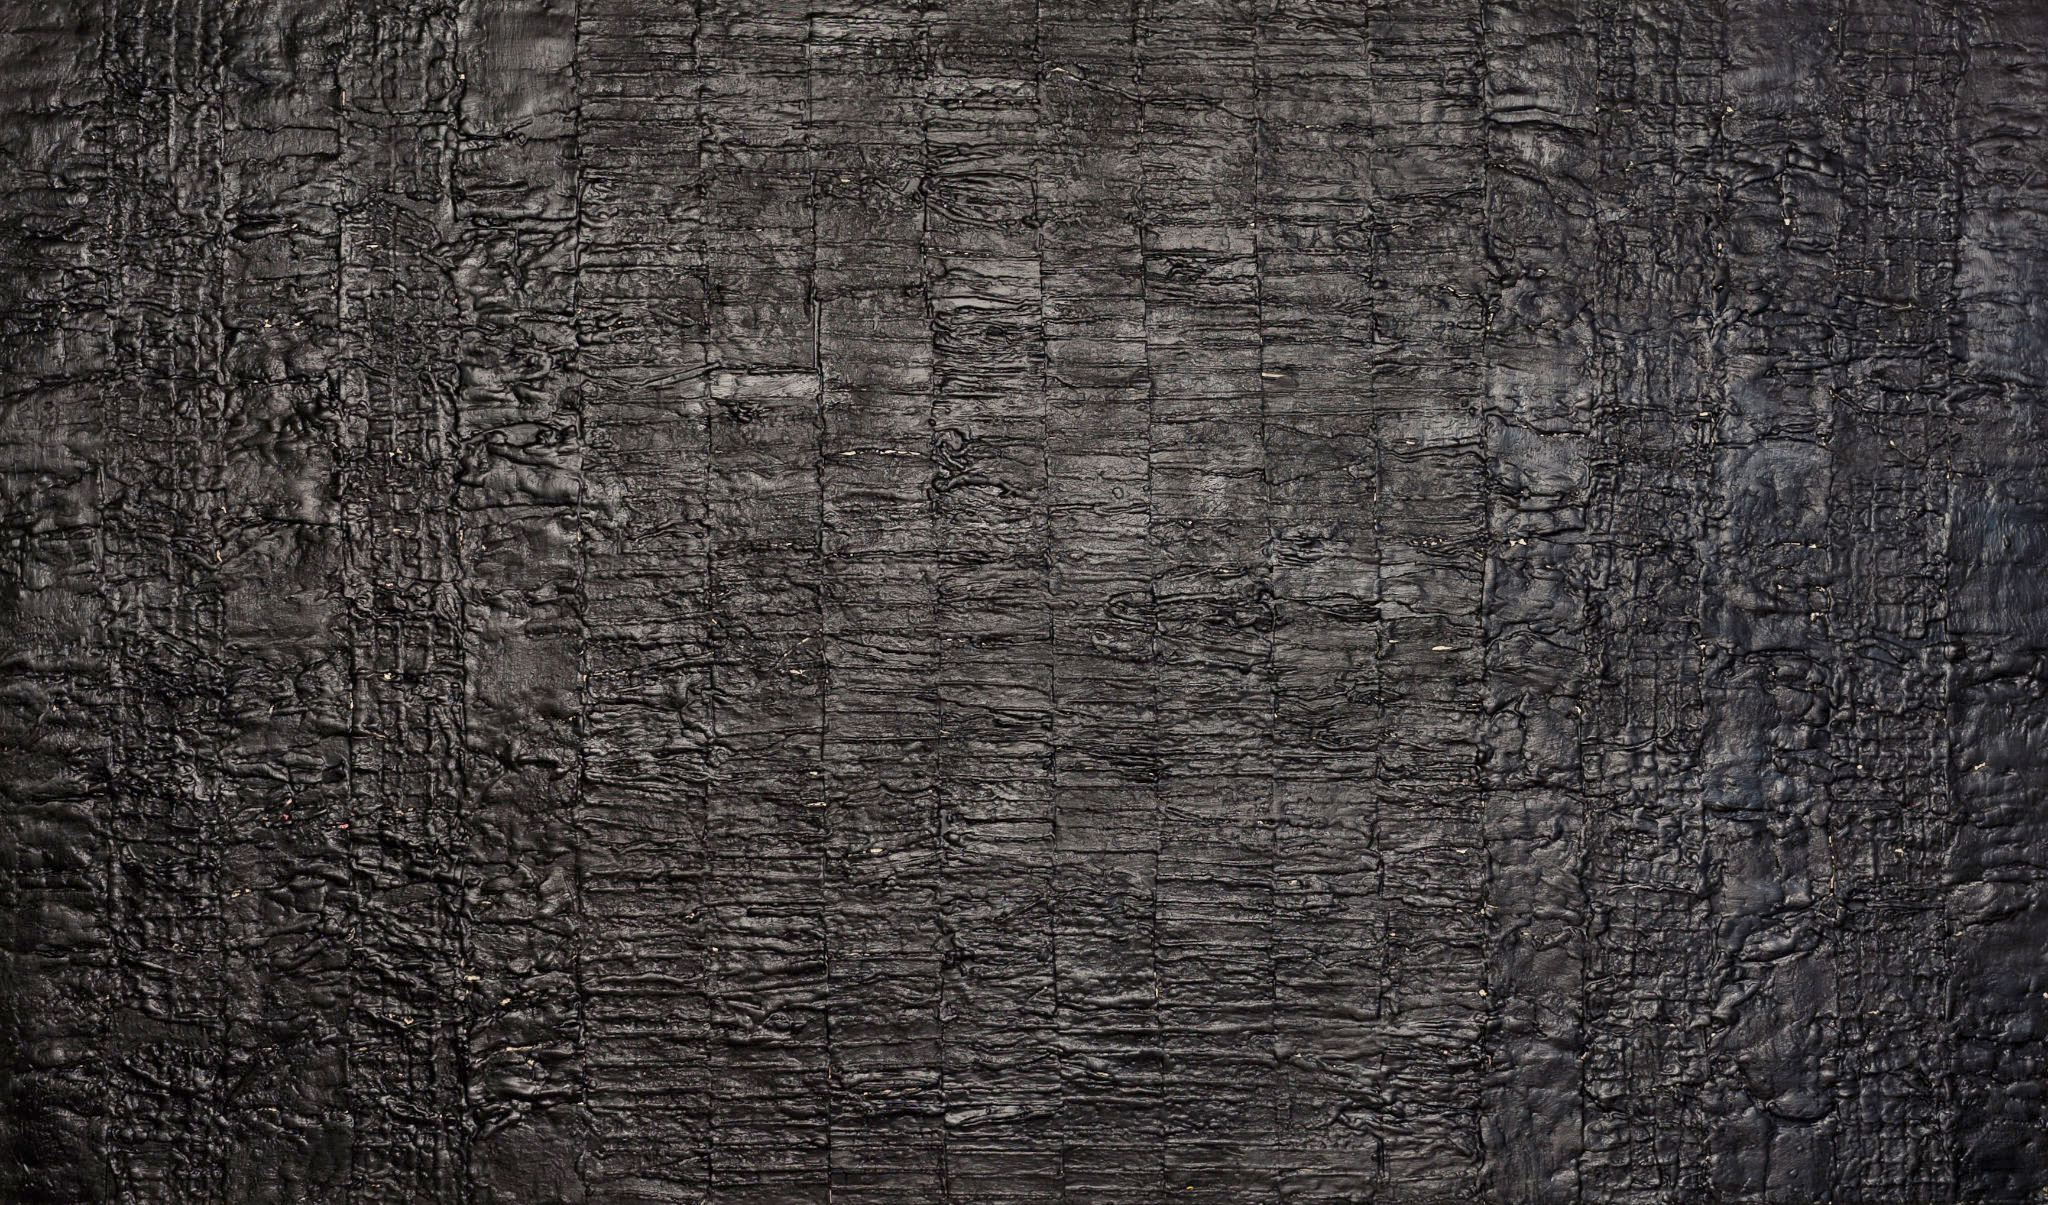 Nicole_Collins_Black_Flag_for_Painting_2012.jpg